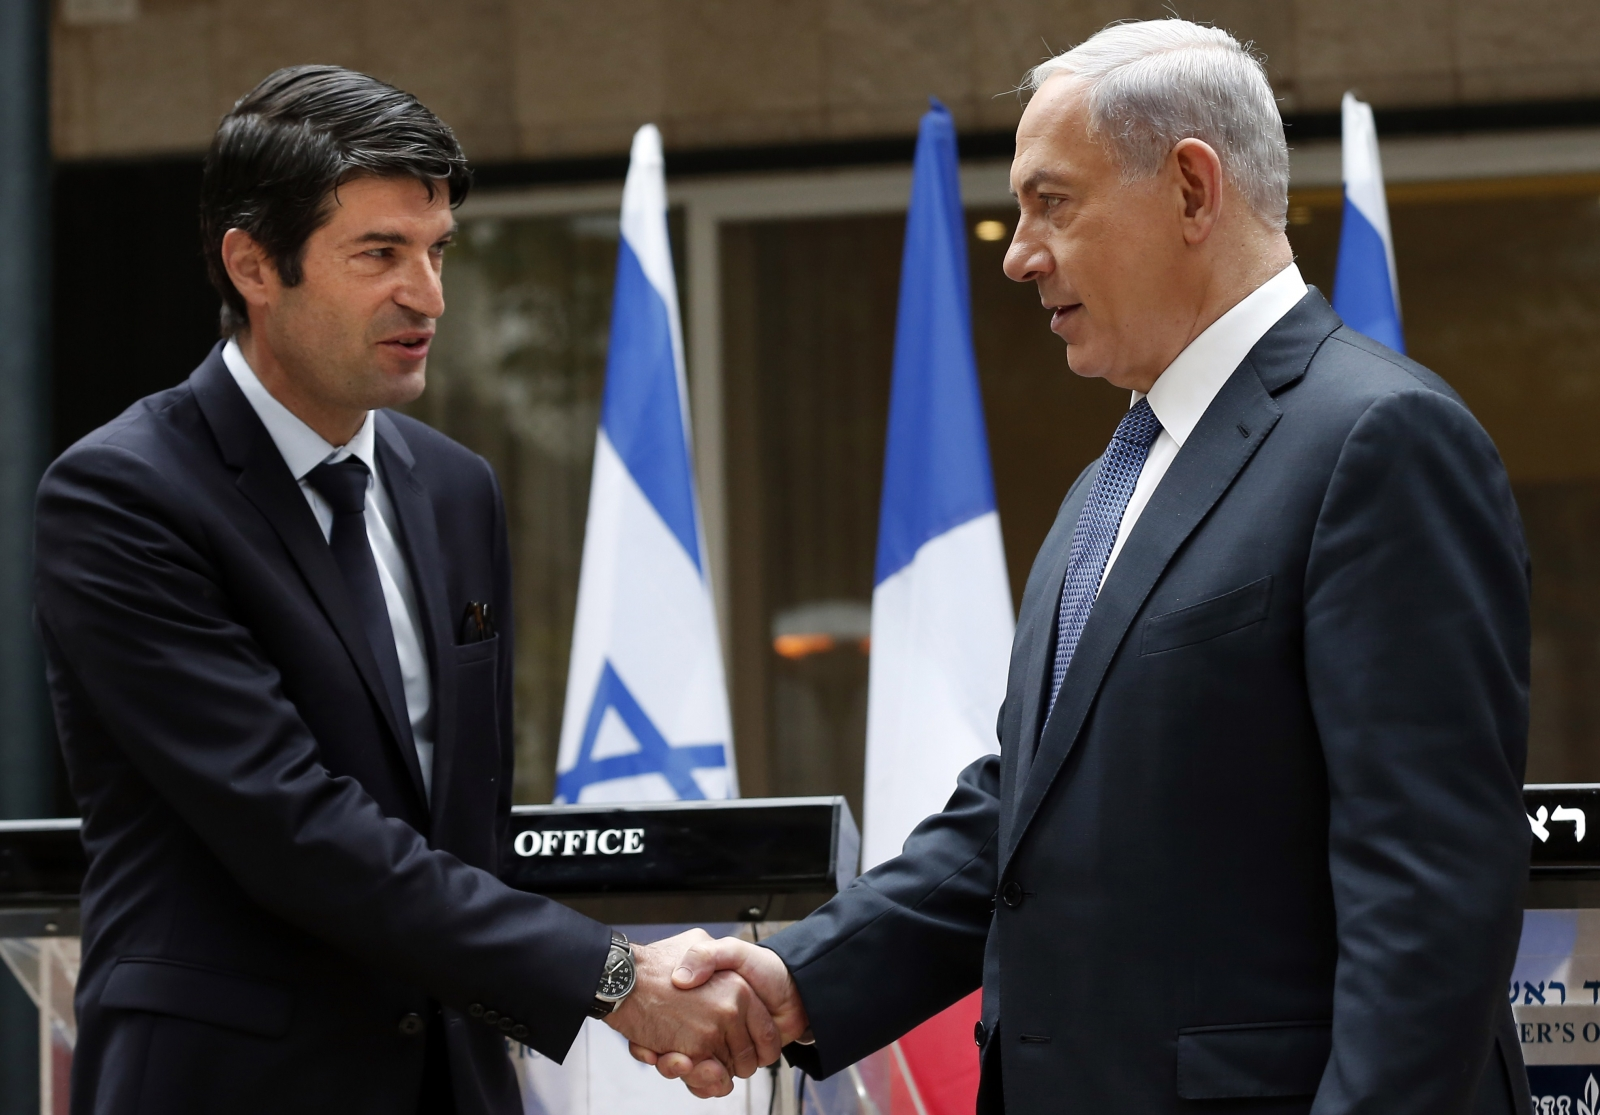 Israeli Prime minister Benjamin Netanyahu (R) shakes hands with French Ambassador to Israel Patrick Maisonnave after presenting his condolences following the deadly attack on French satirical newspaper Charlie Hebdo on January 9, 2015 at the Prime Ministe